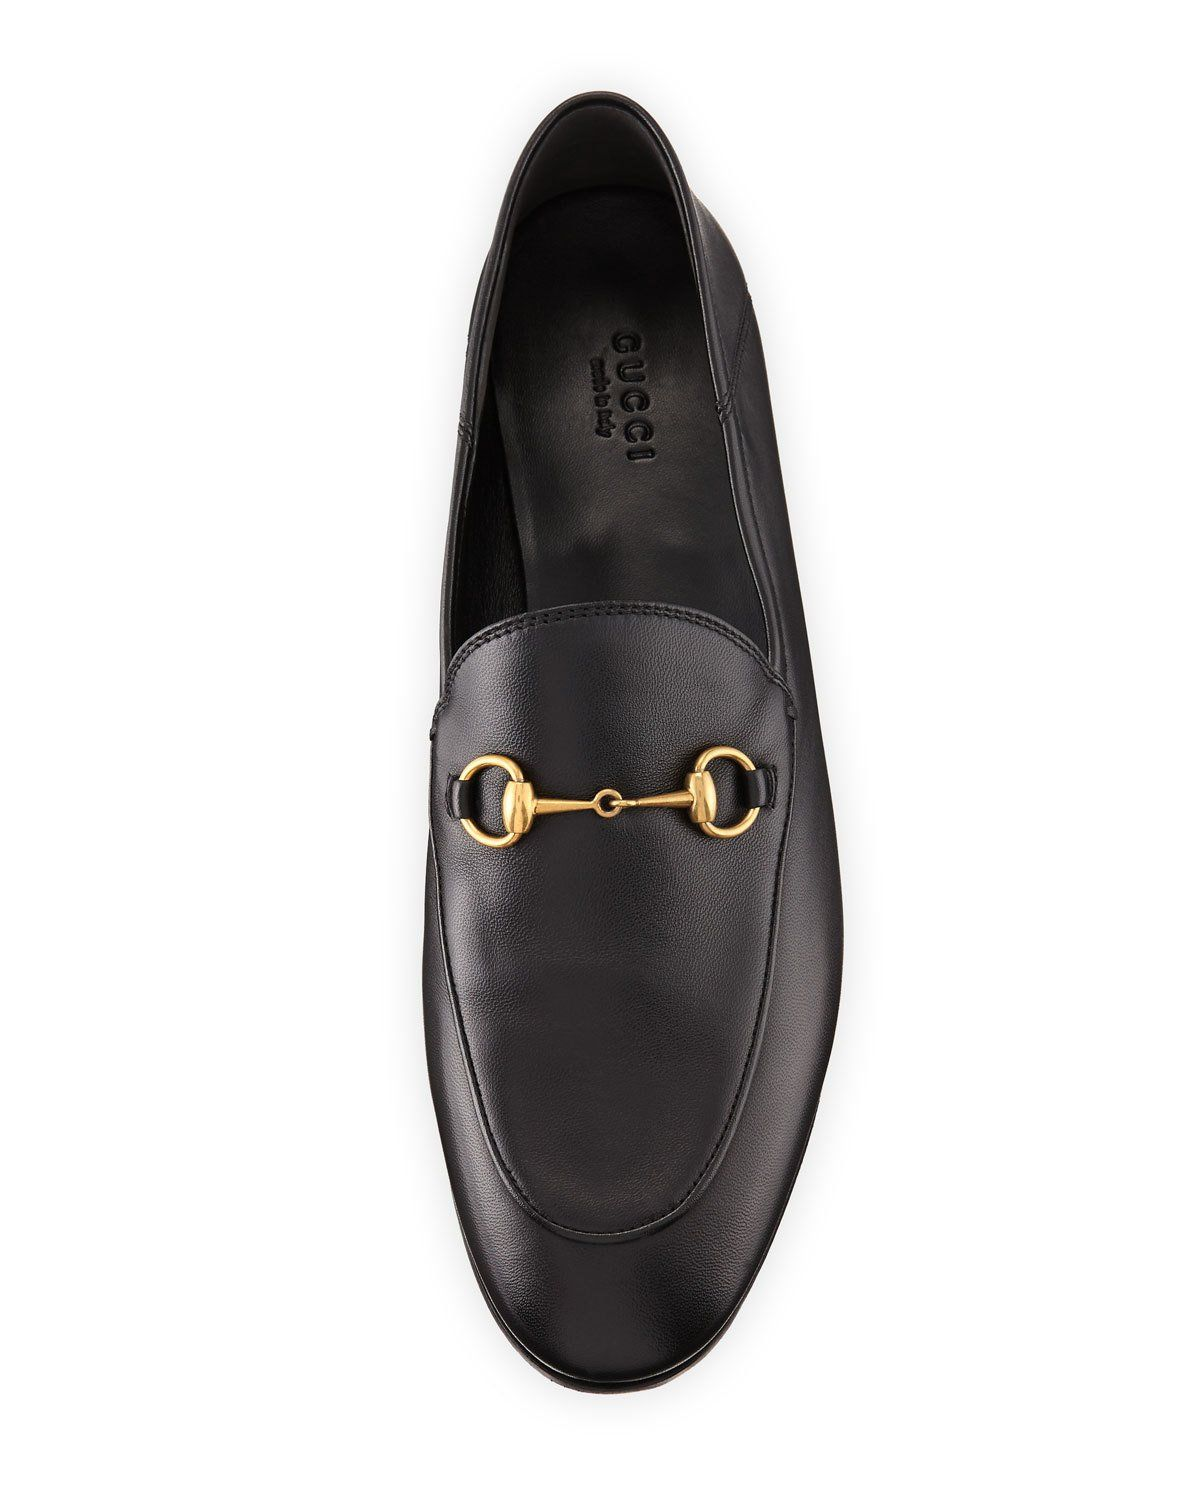 100f68bc7 Gucci Brixton Leather Horsebit Loafer, Black | ALLIE'S WISH LIST ...